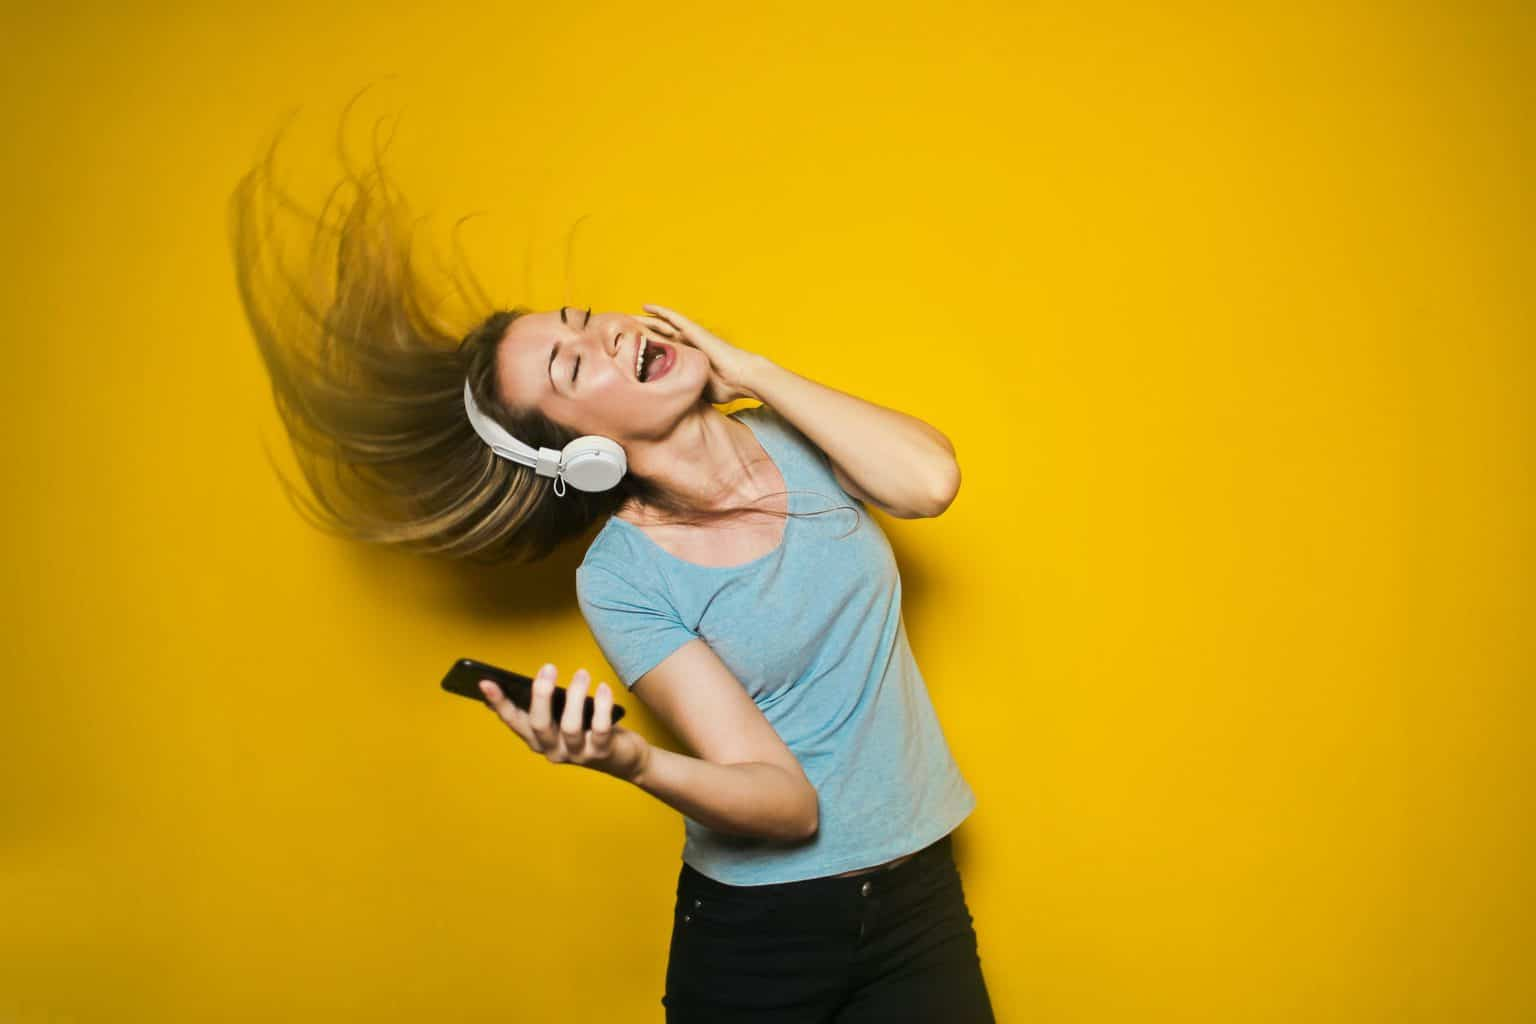 Micro-Habits to Reduce Stress: Listen to Uplifting Music